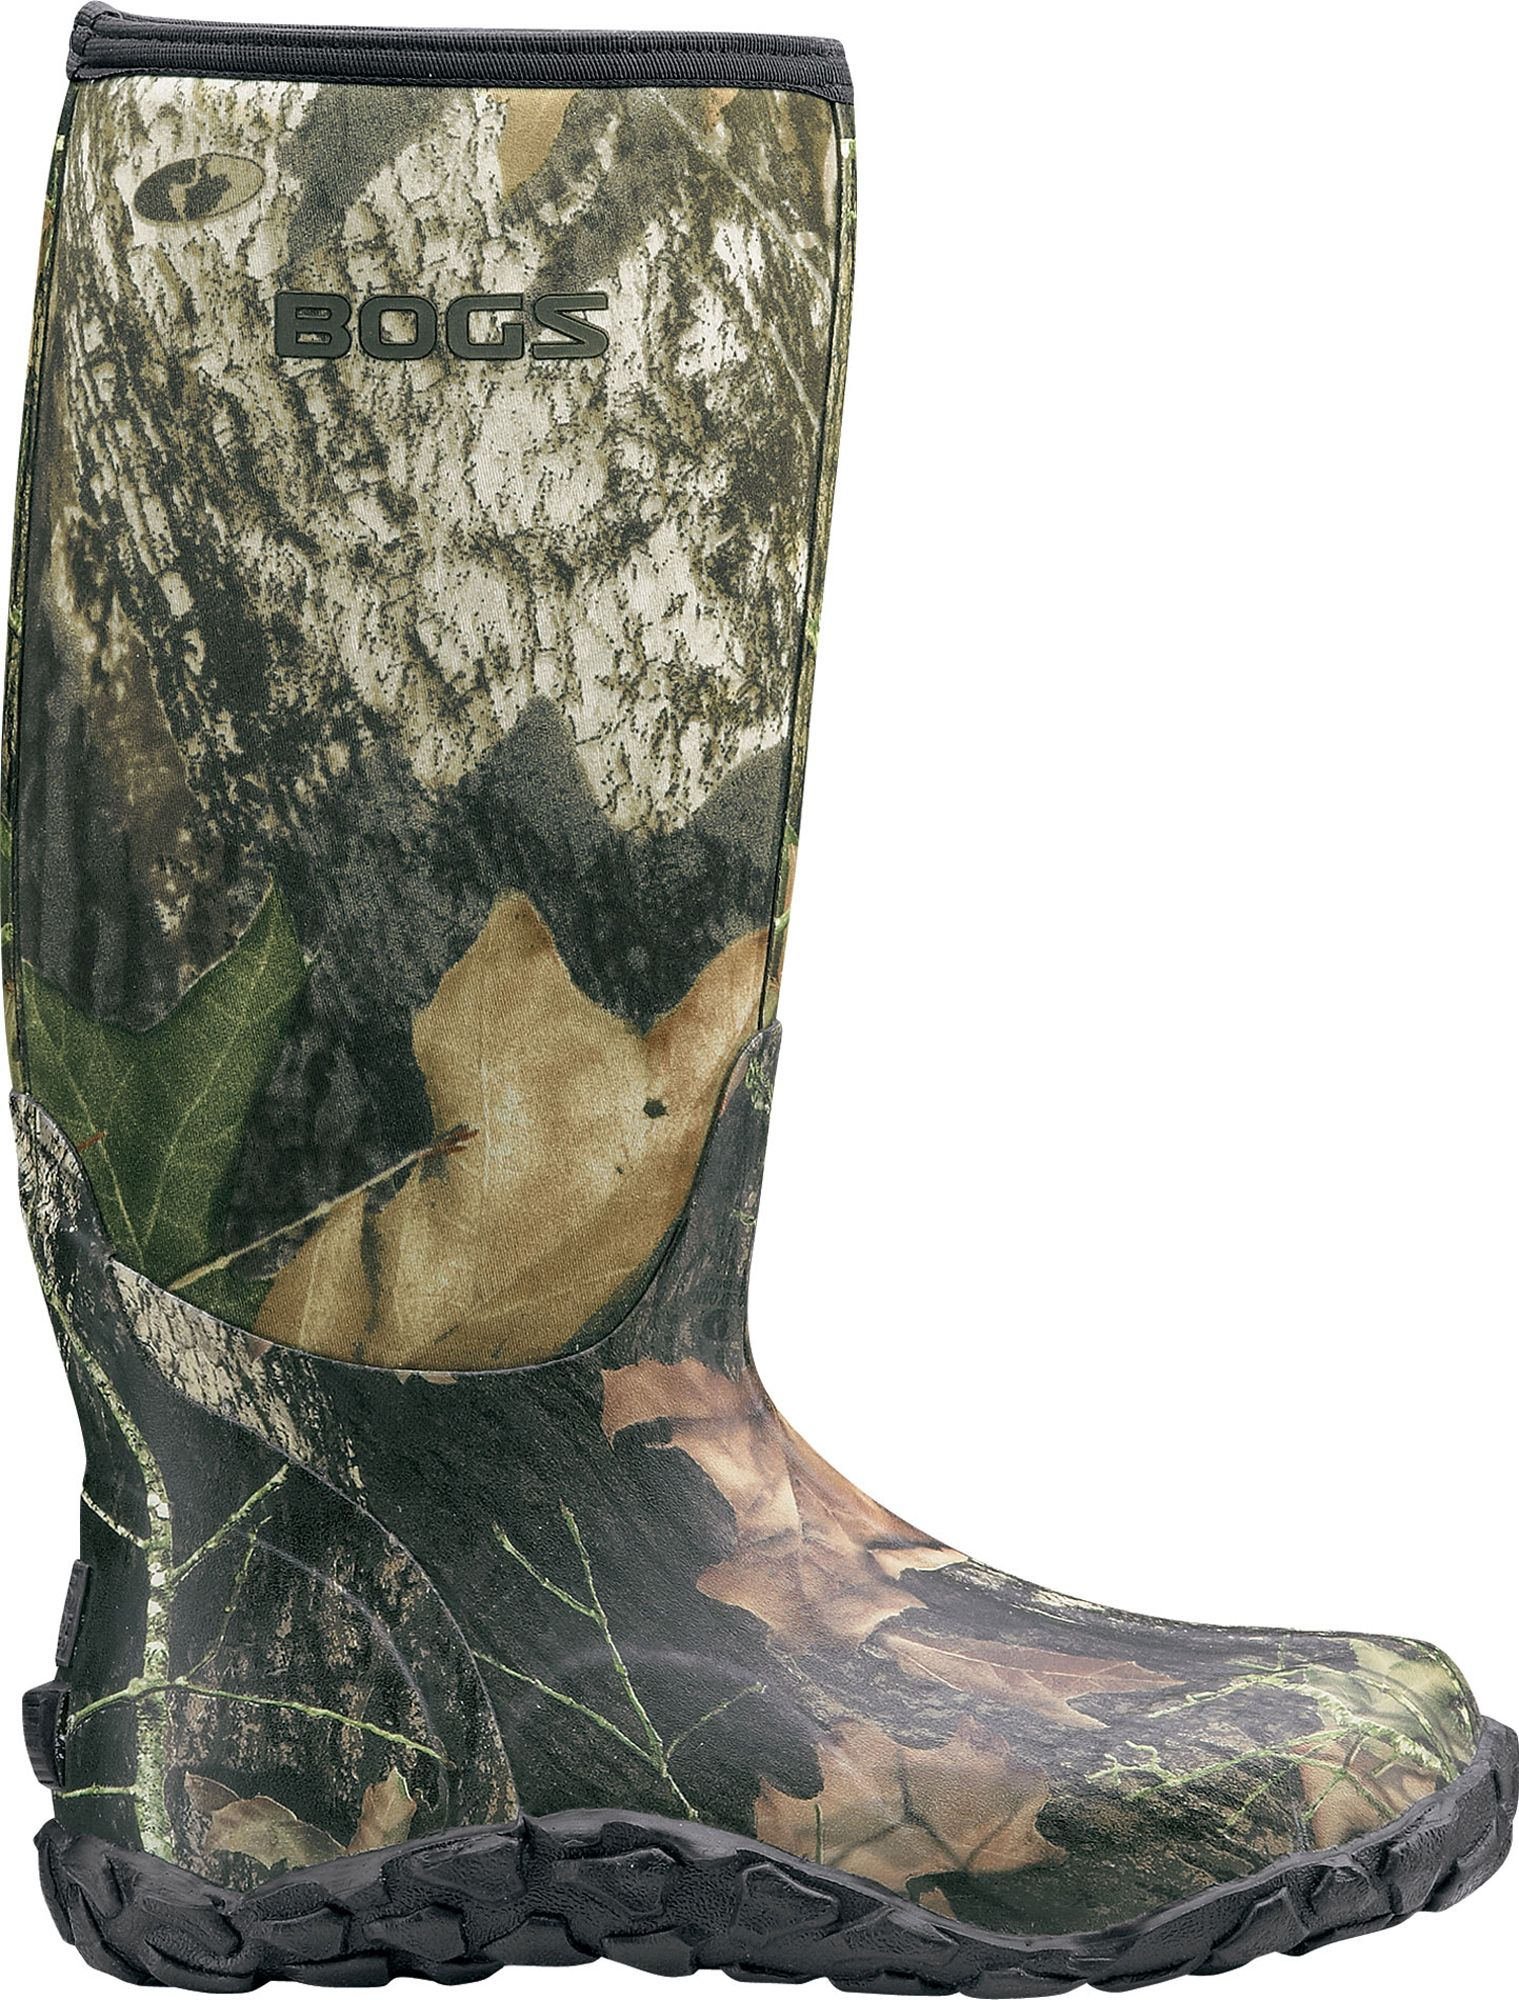 BOGS Men\'s Classic High Mossy Oak Rubber Hunting Boots | Field & Stream